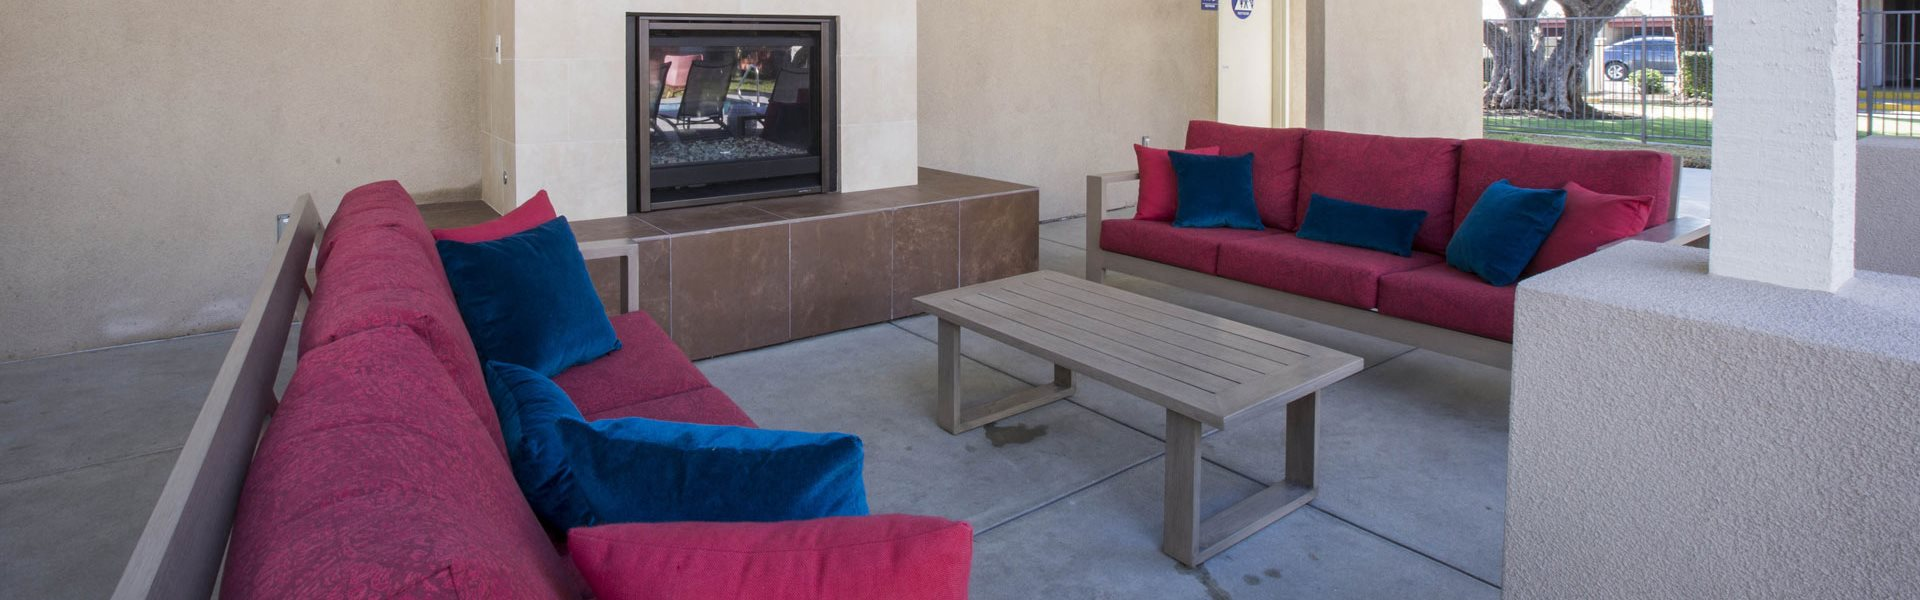 Poolside covered area with TV and fireplaceMinutes from Downey, CA l Corsica